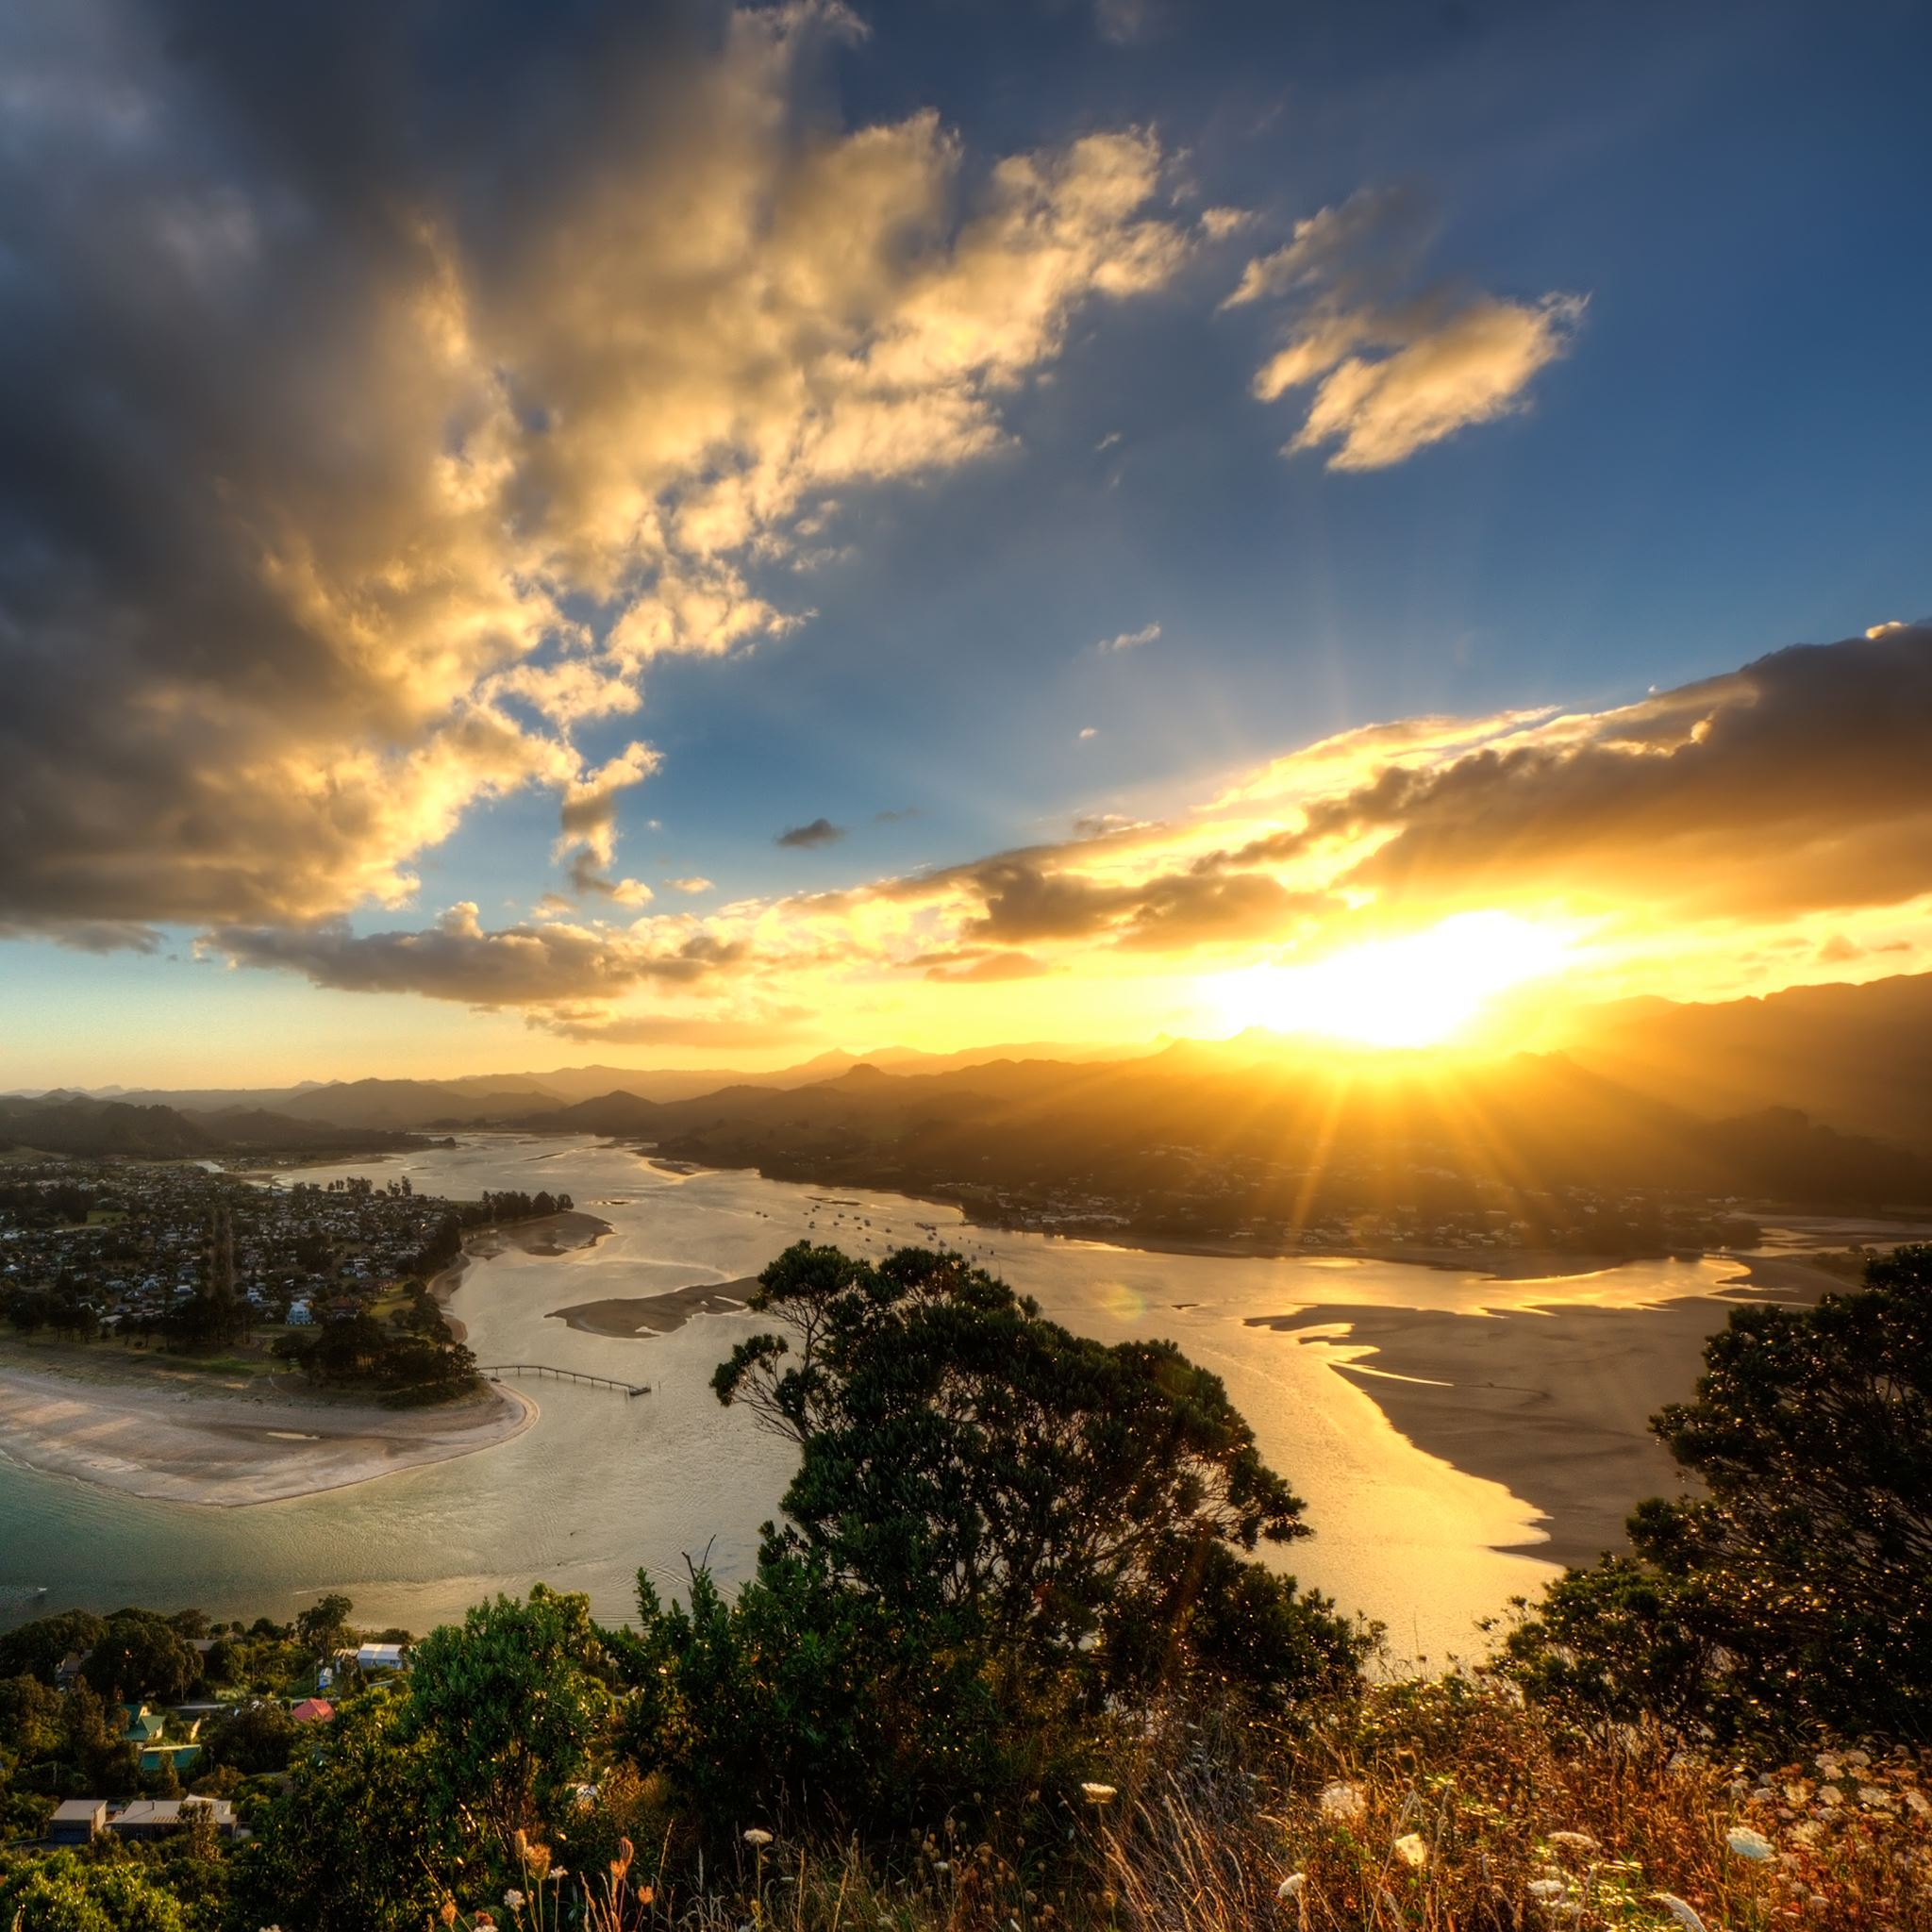 Sunset in Tairua iPad Air wallpaper